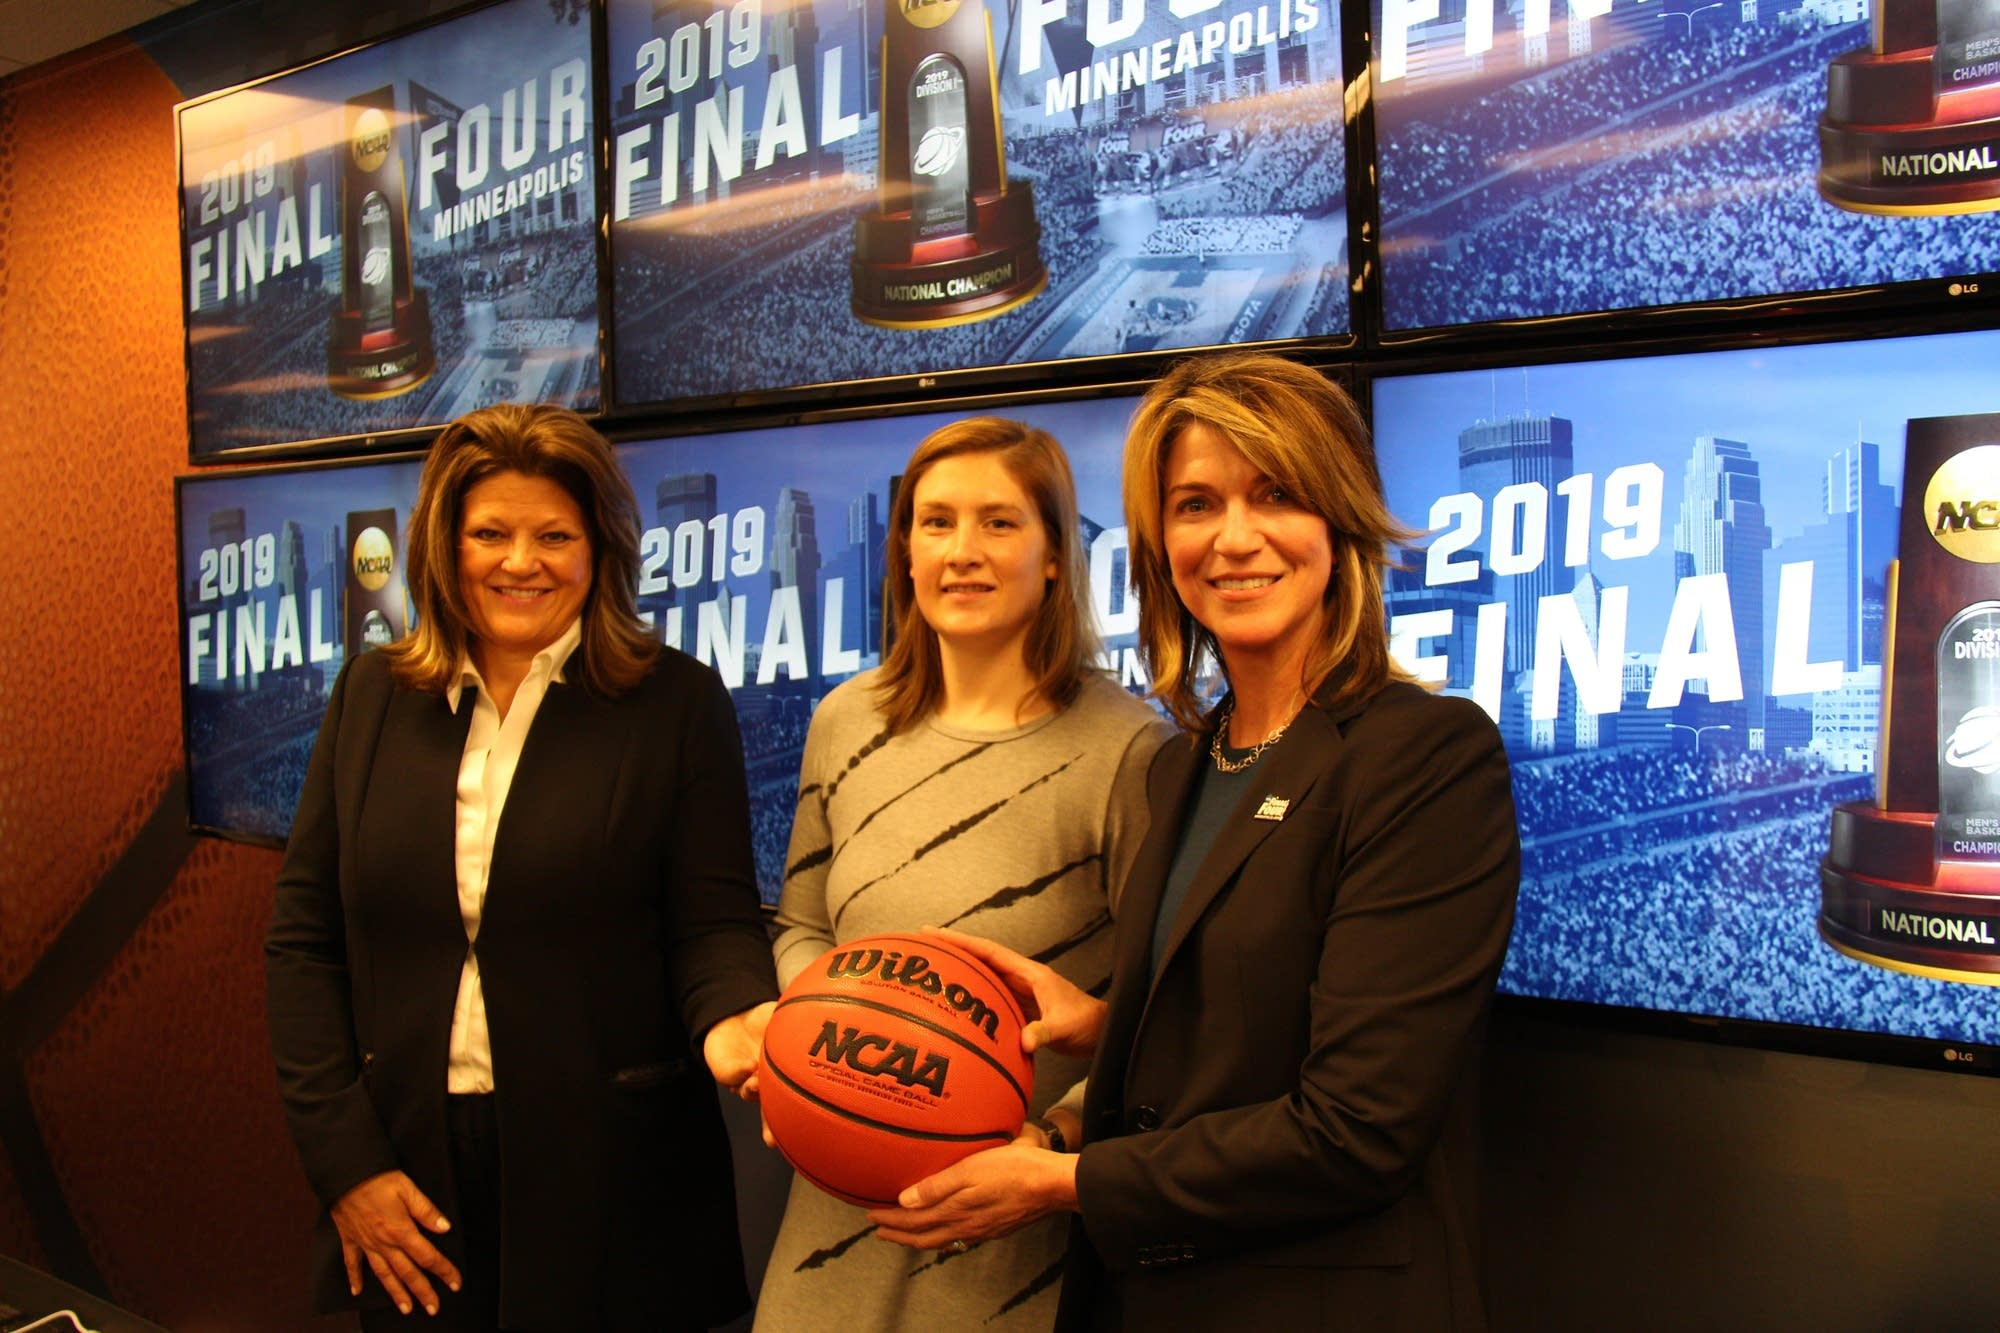 Final Four kickoff event